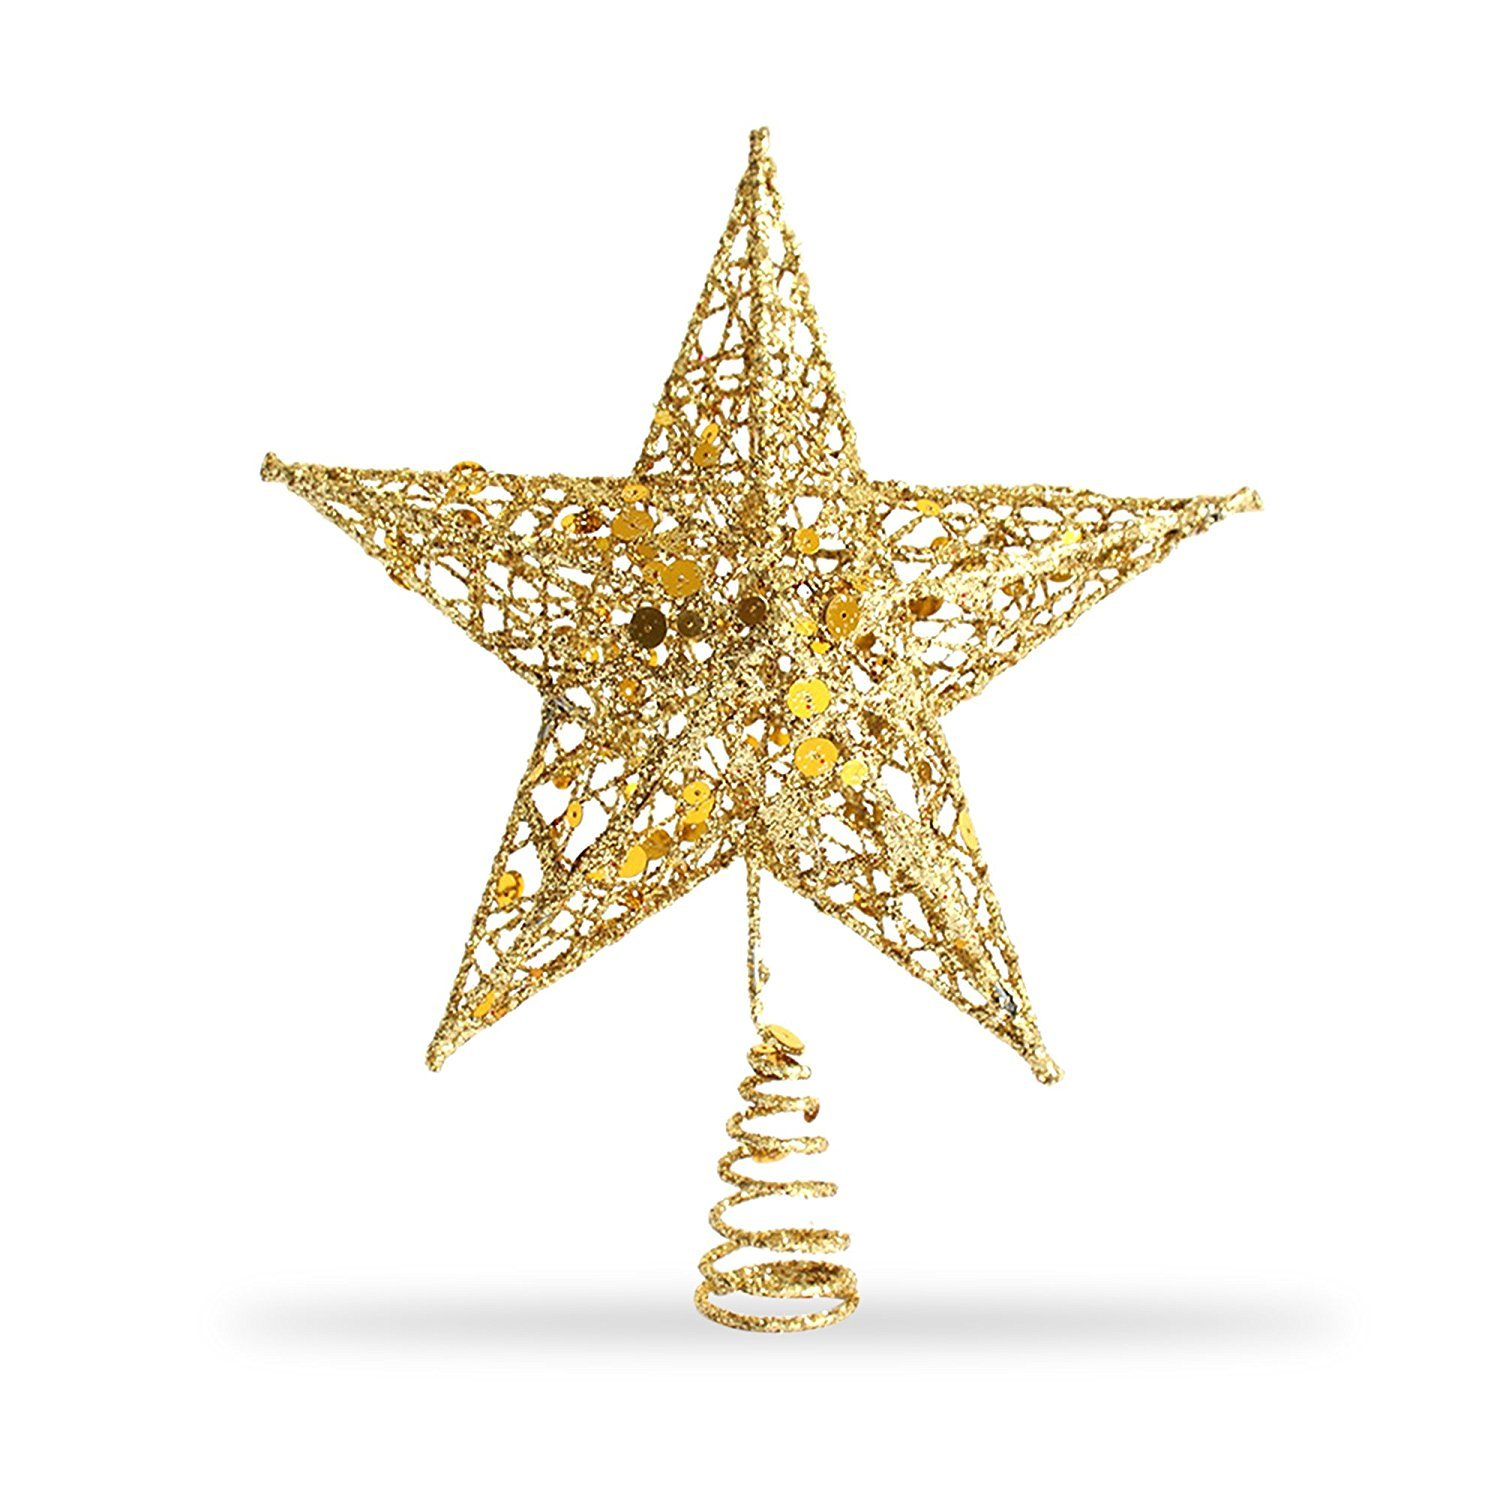 Idealgo 1PCS 20cm15cm Star Tree Topper Christmas Tree Decoration 5 Point Star Treetop Decor (20cm15cm, Gold)